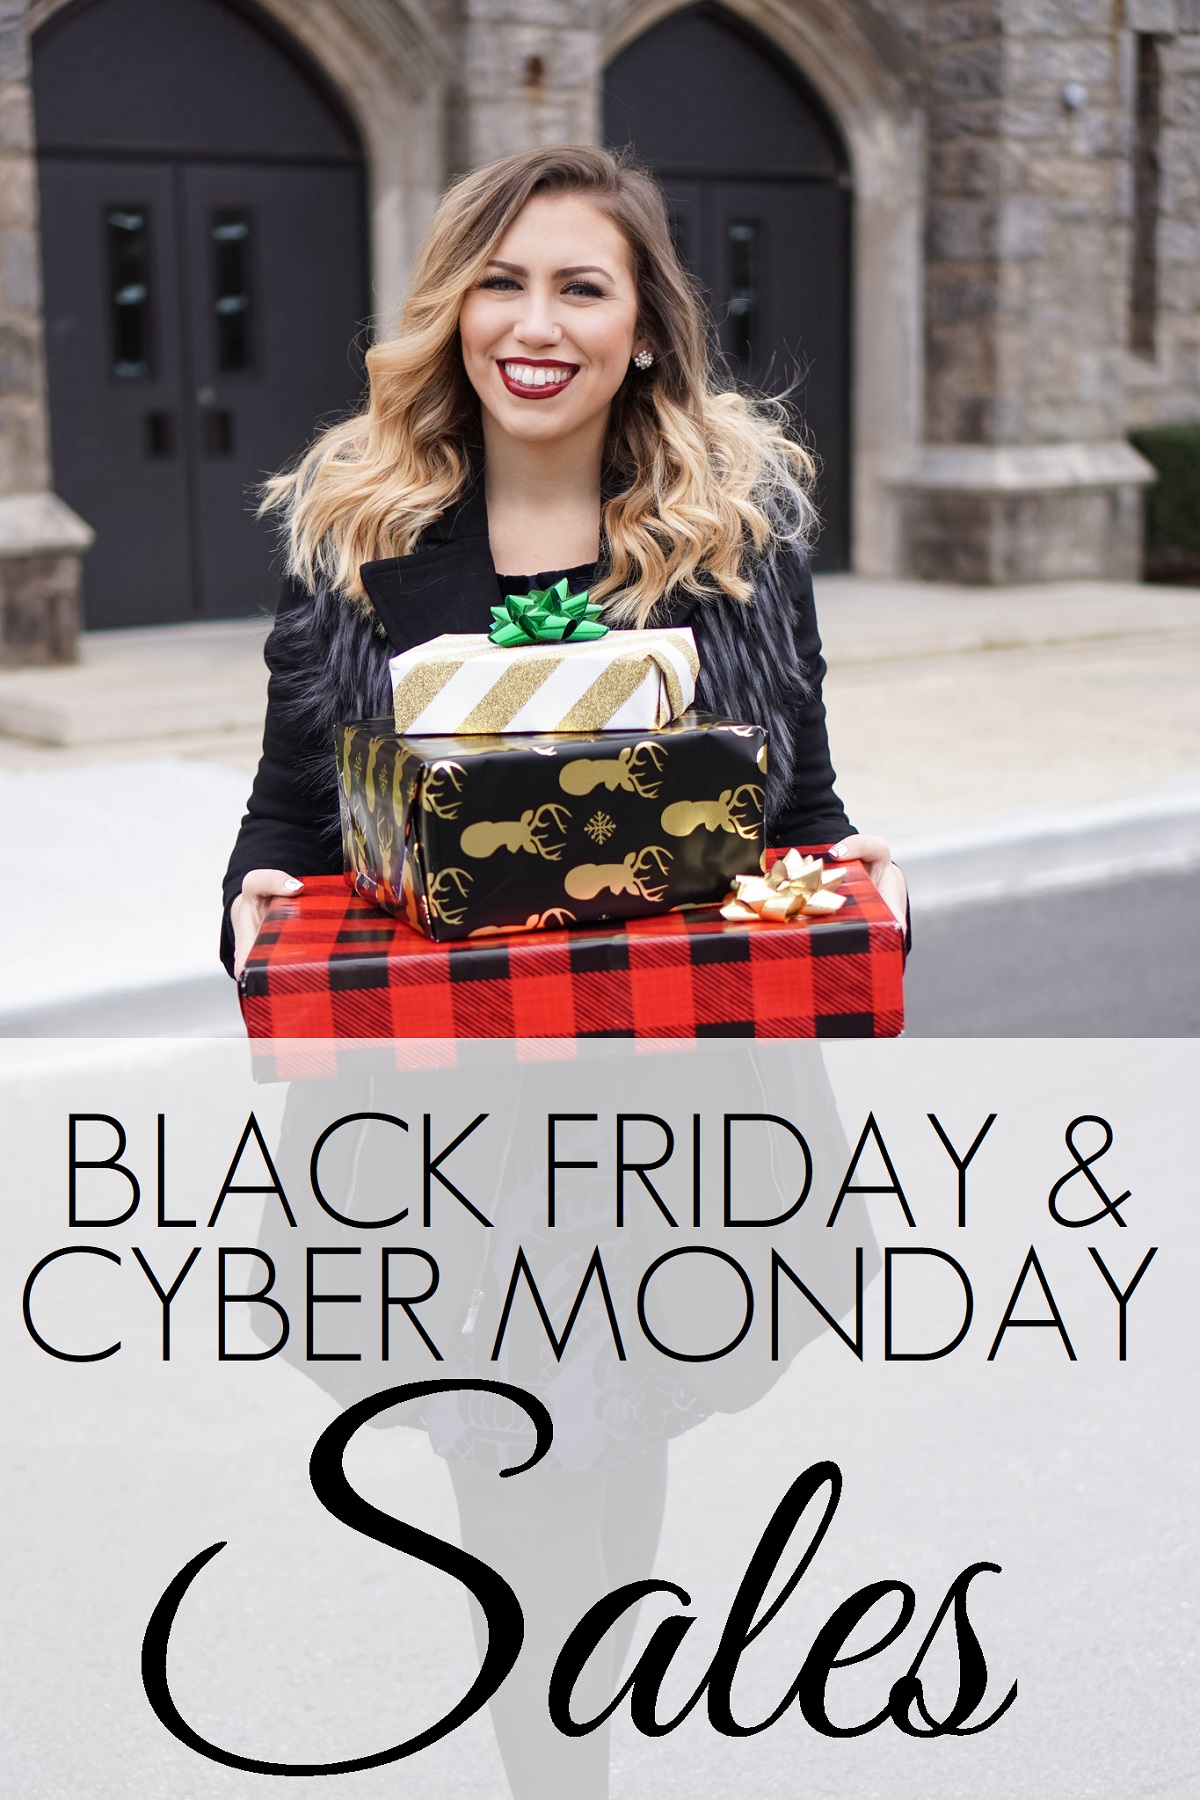 ALL the BEST Black Friday & Cyber Monday Sales of 2017